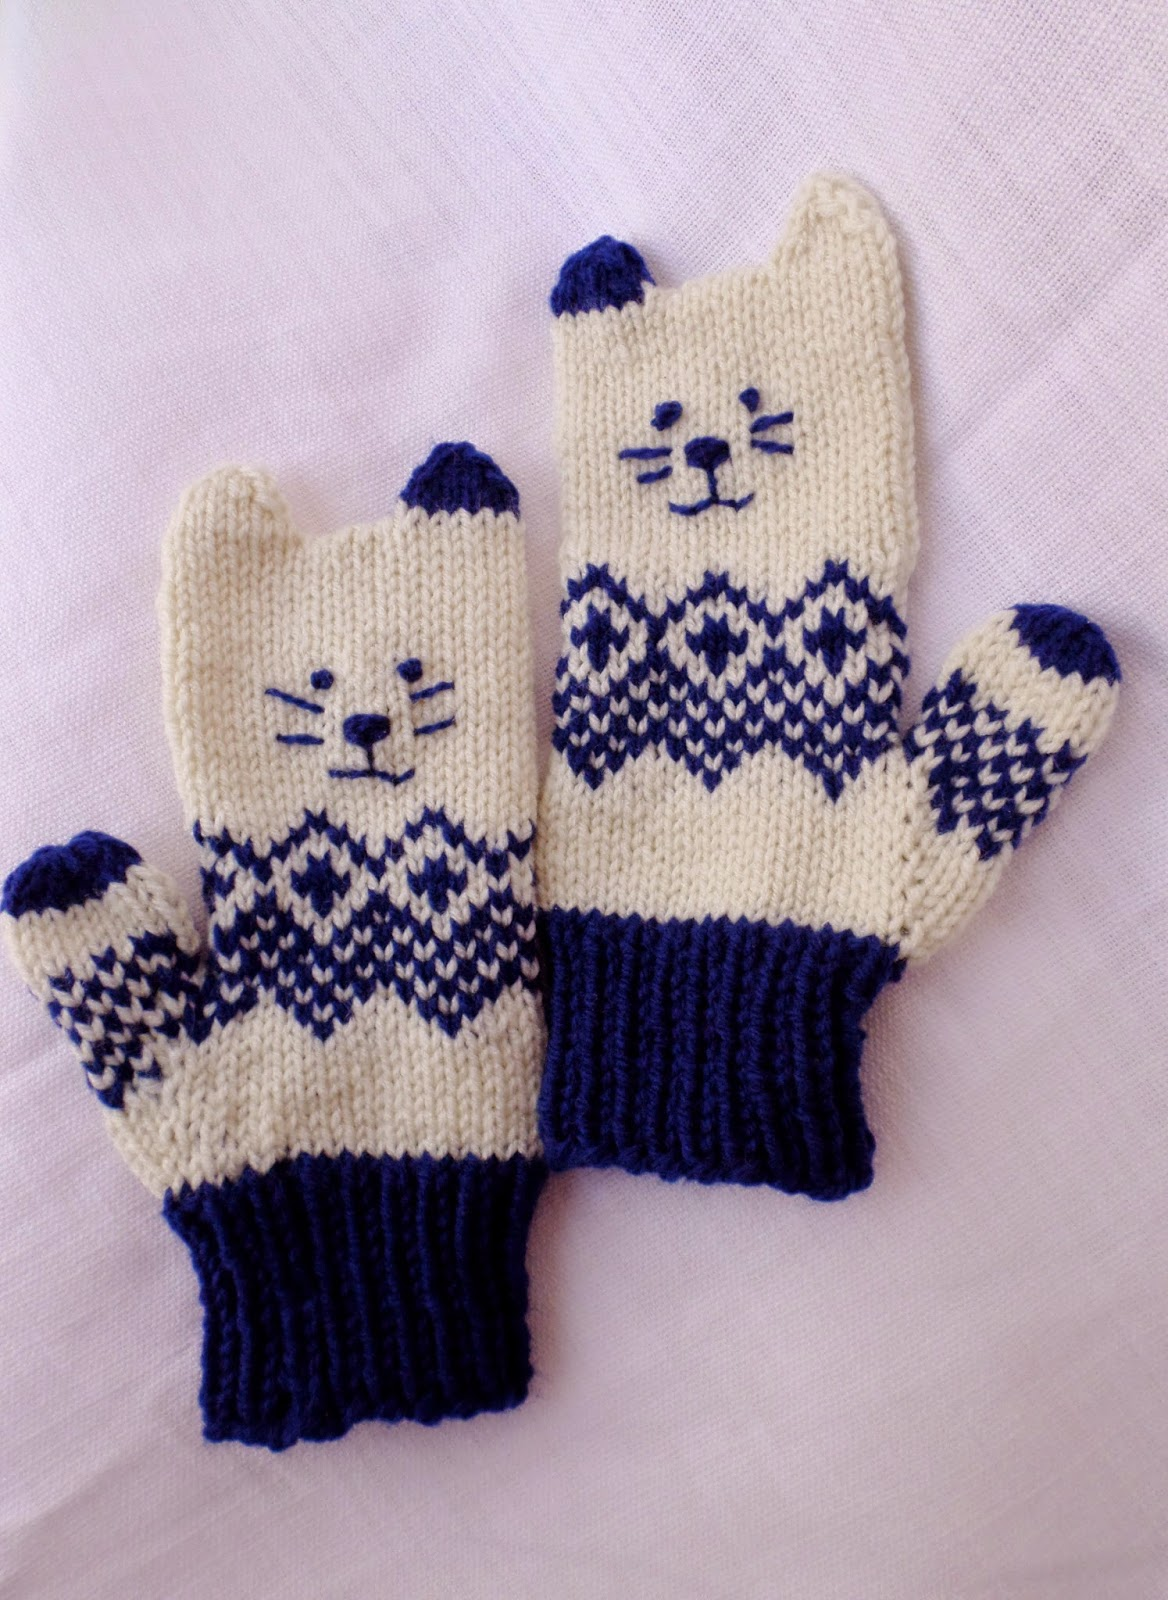 Saltycrafts Norwegian Kitten Mittens Three little kittens they lost their mittens, and they began to cry, oh, mother dear, we sadly fear our mittens we have lost. saltycrafts blogger